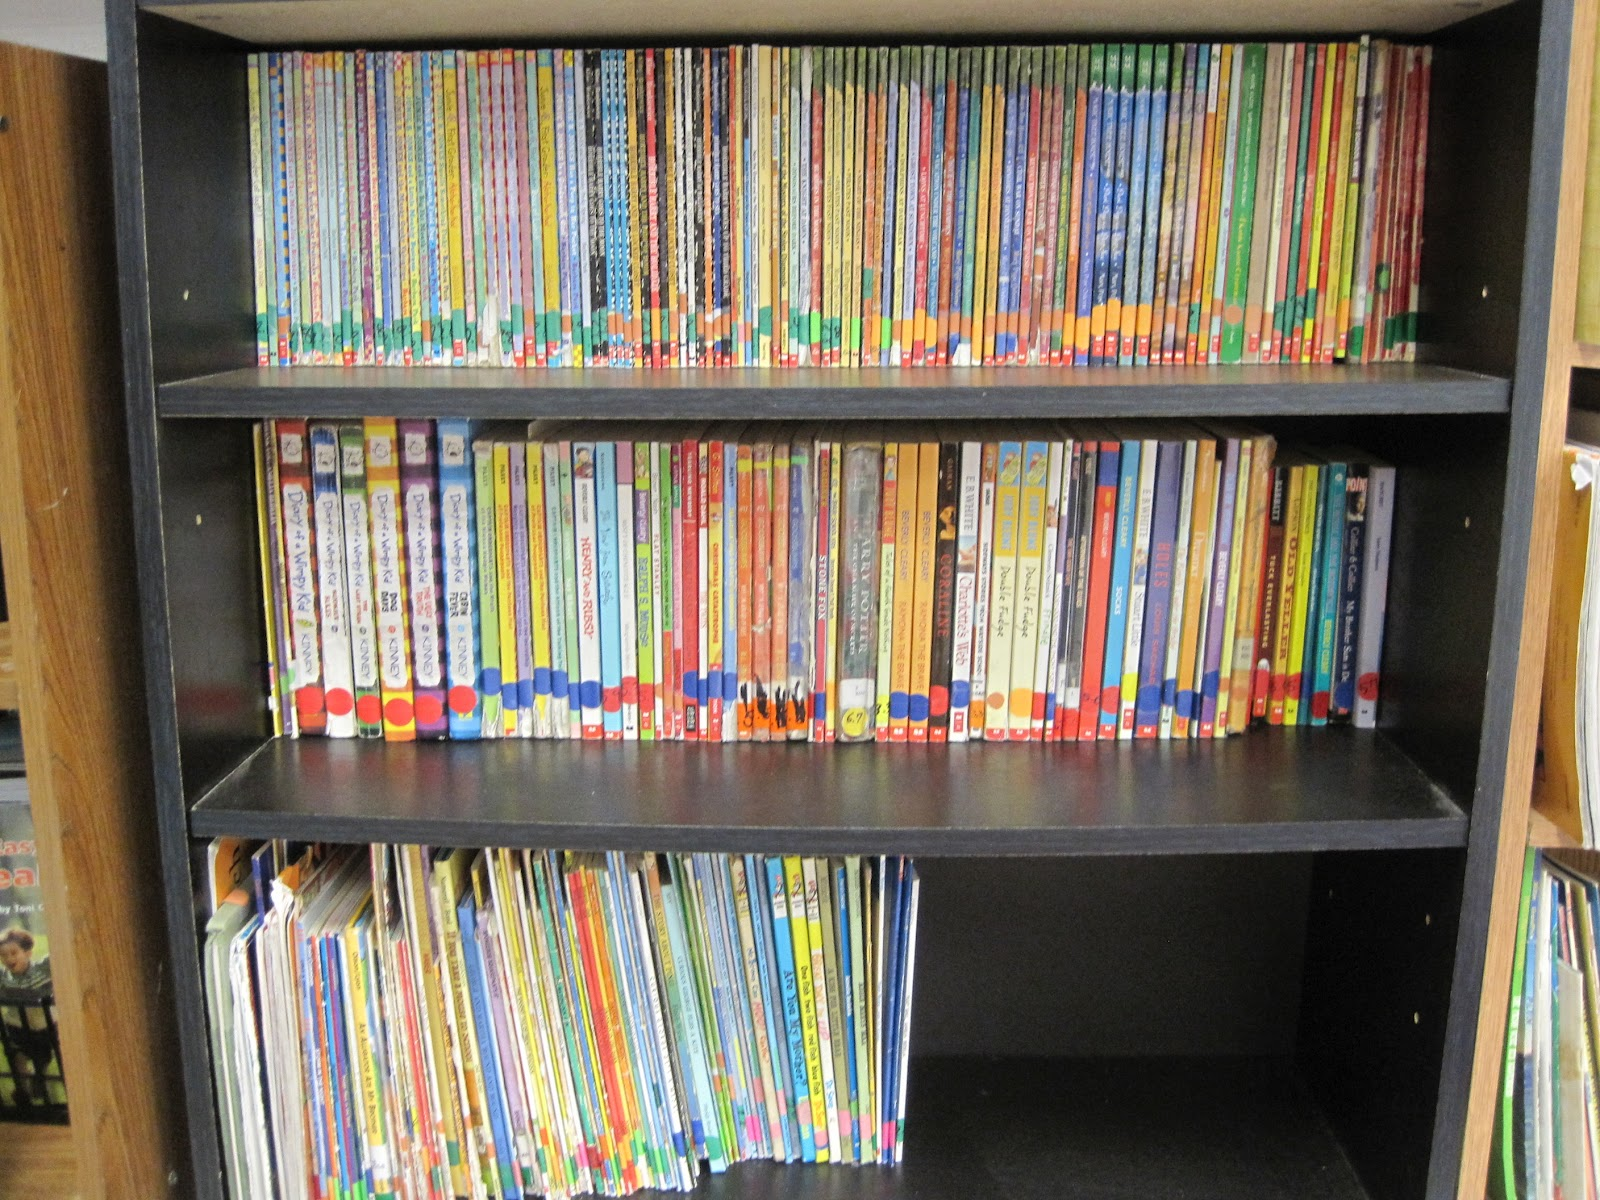 bookcase library classroom diy me pin plnr for bookshelf